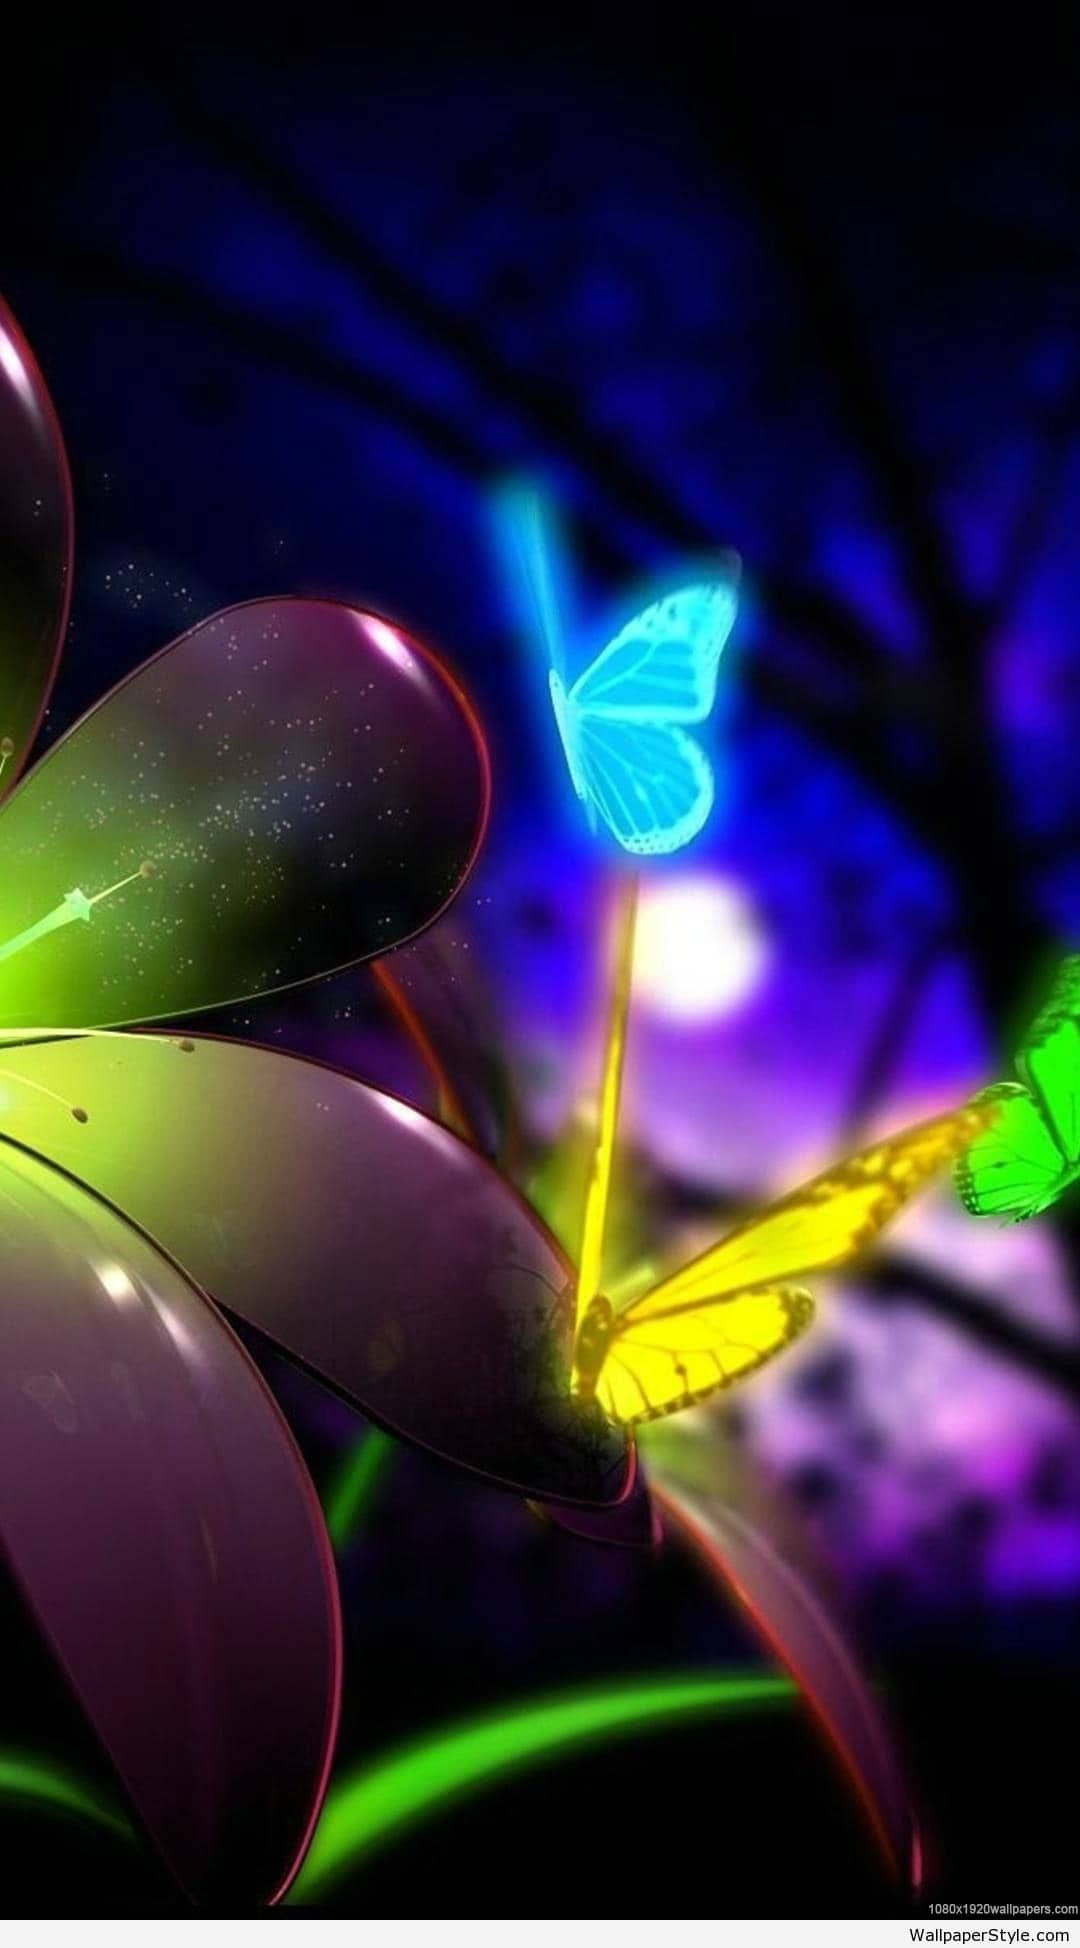 android 3d wallpapers free download - http://wallpaperstyle